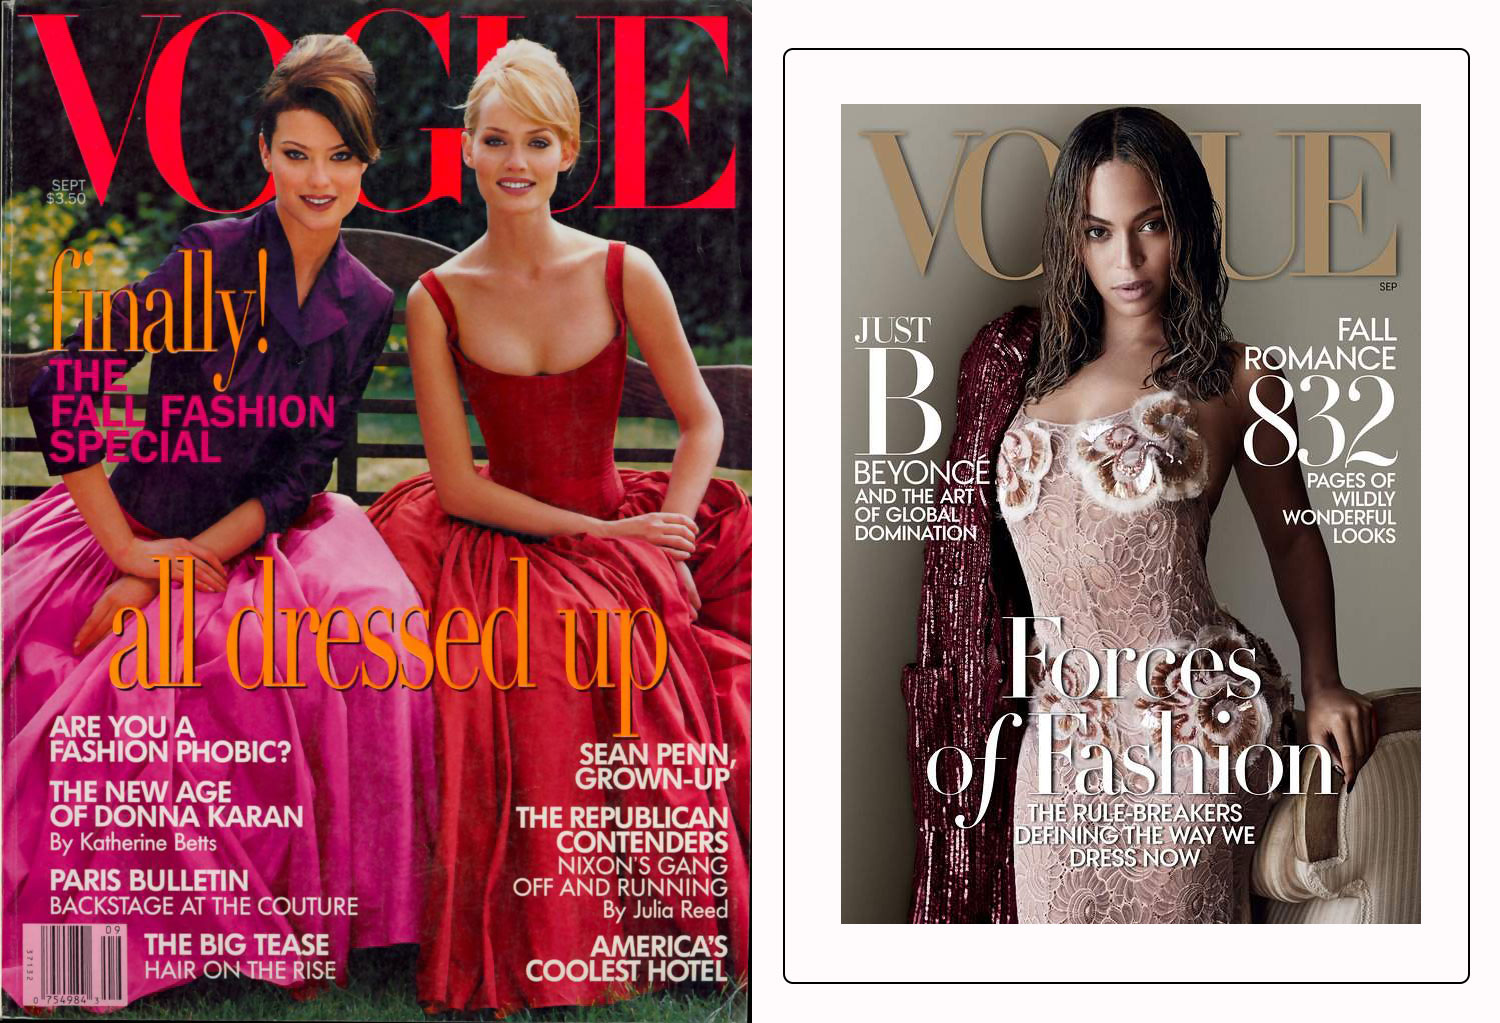 Vogue September 1995 cover vs September 2015